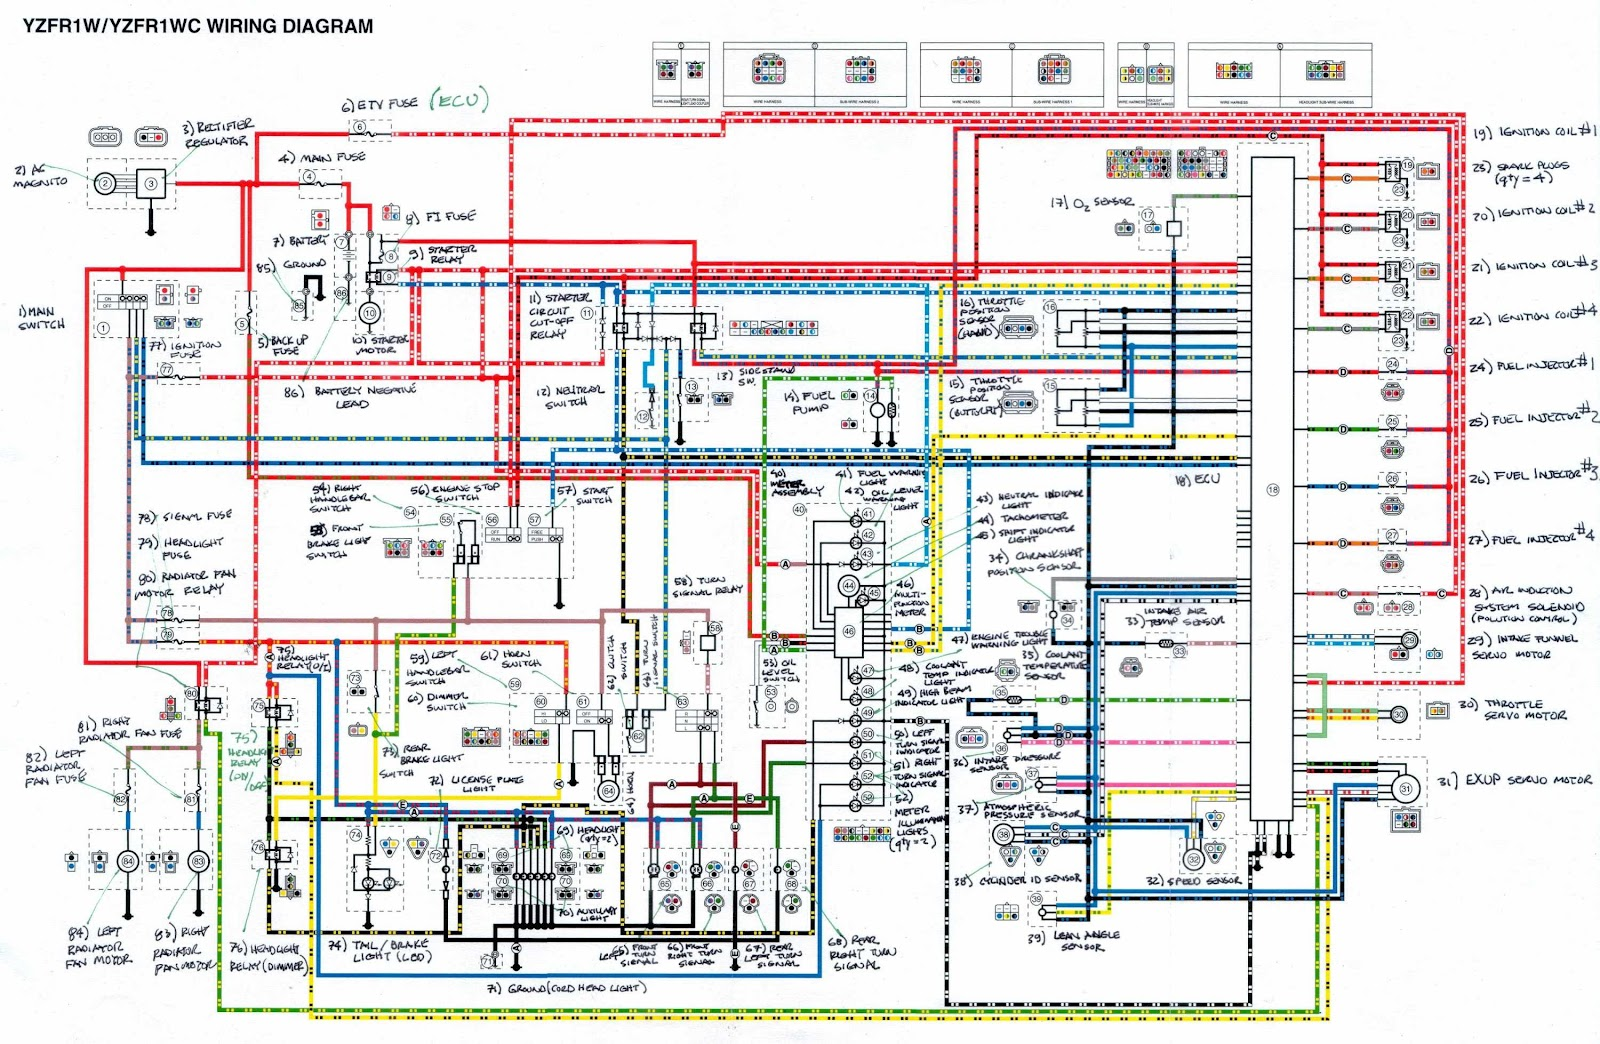 2007 Gsxr Wiring Diagram Block Explanation 750 Yamaha Yzf R1 Motorcycle All About Diagrams